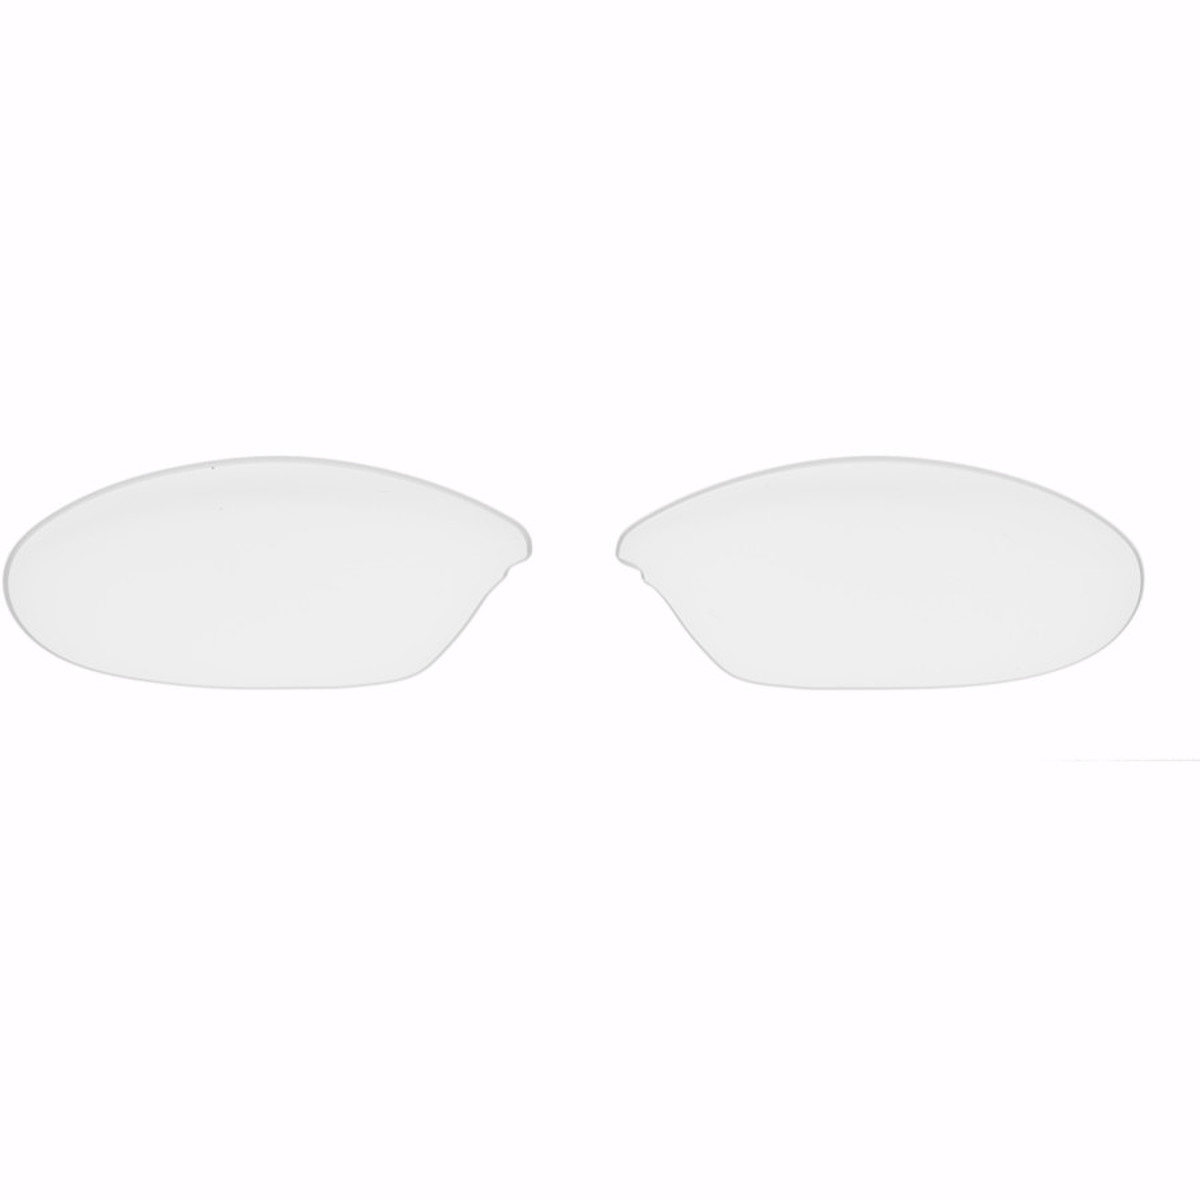 Native Eyewear Silencer Lens Kit